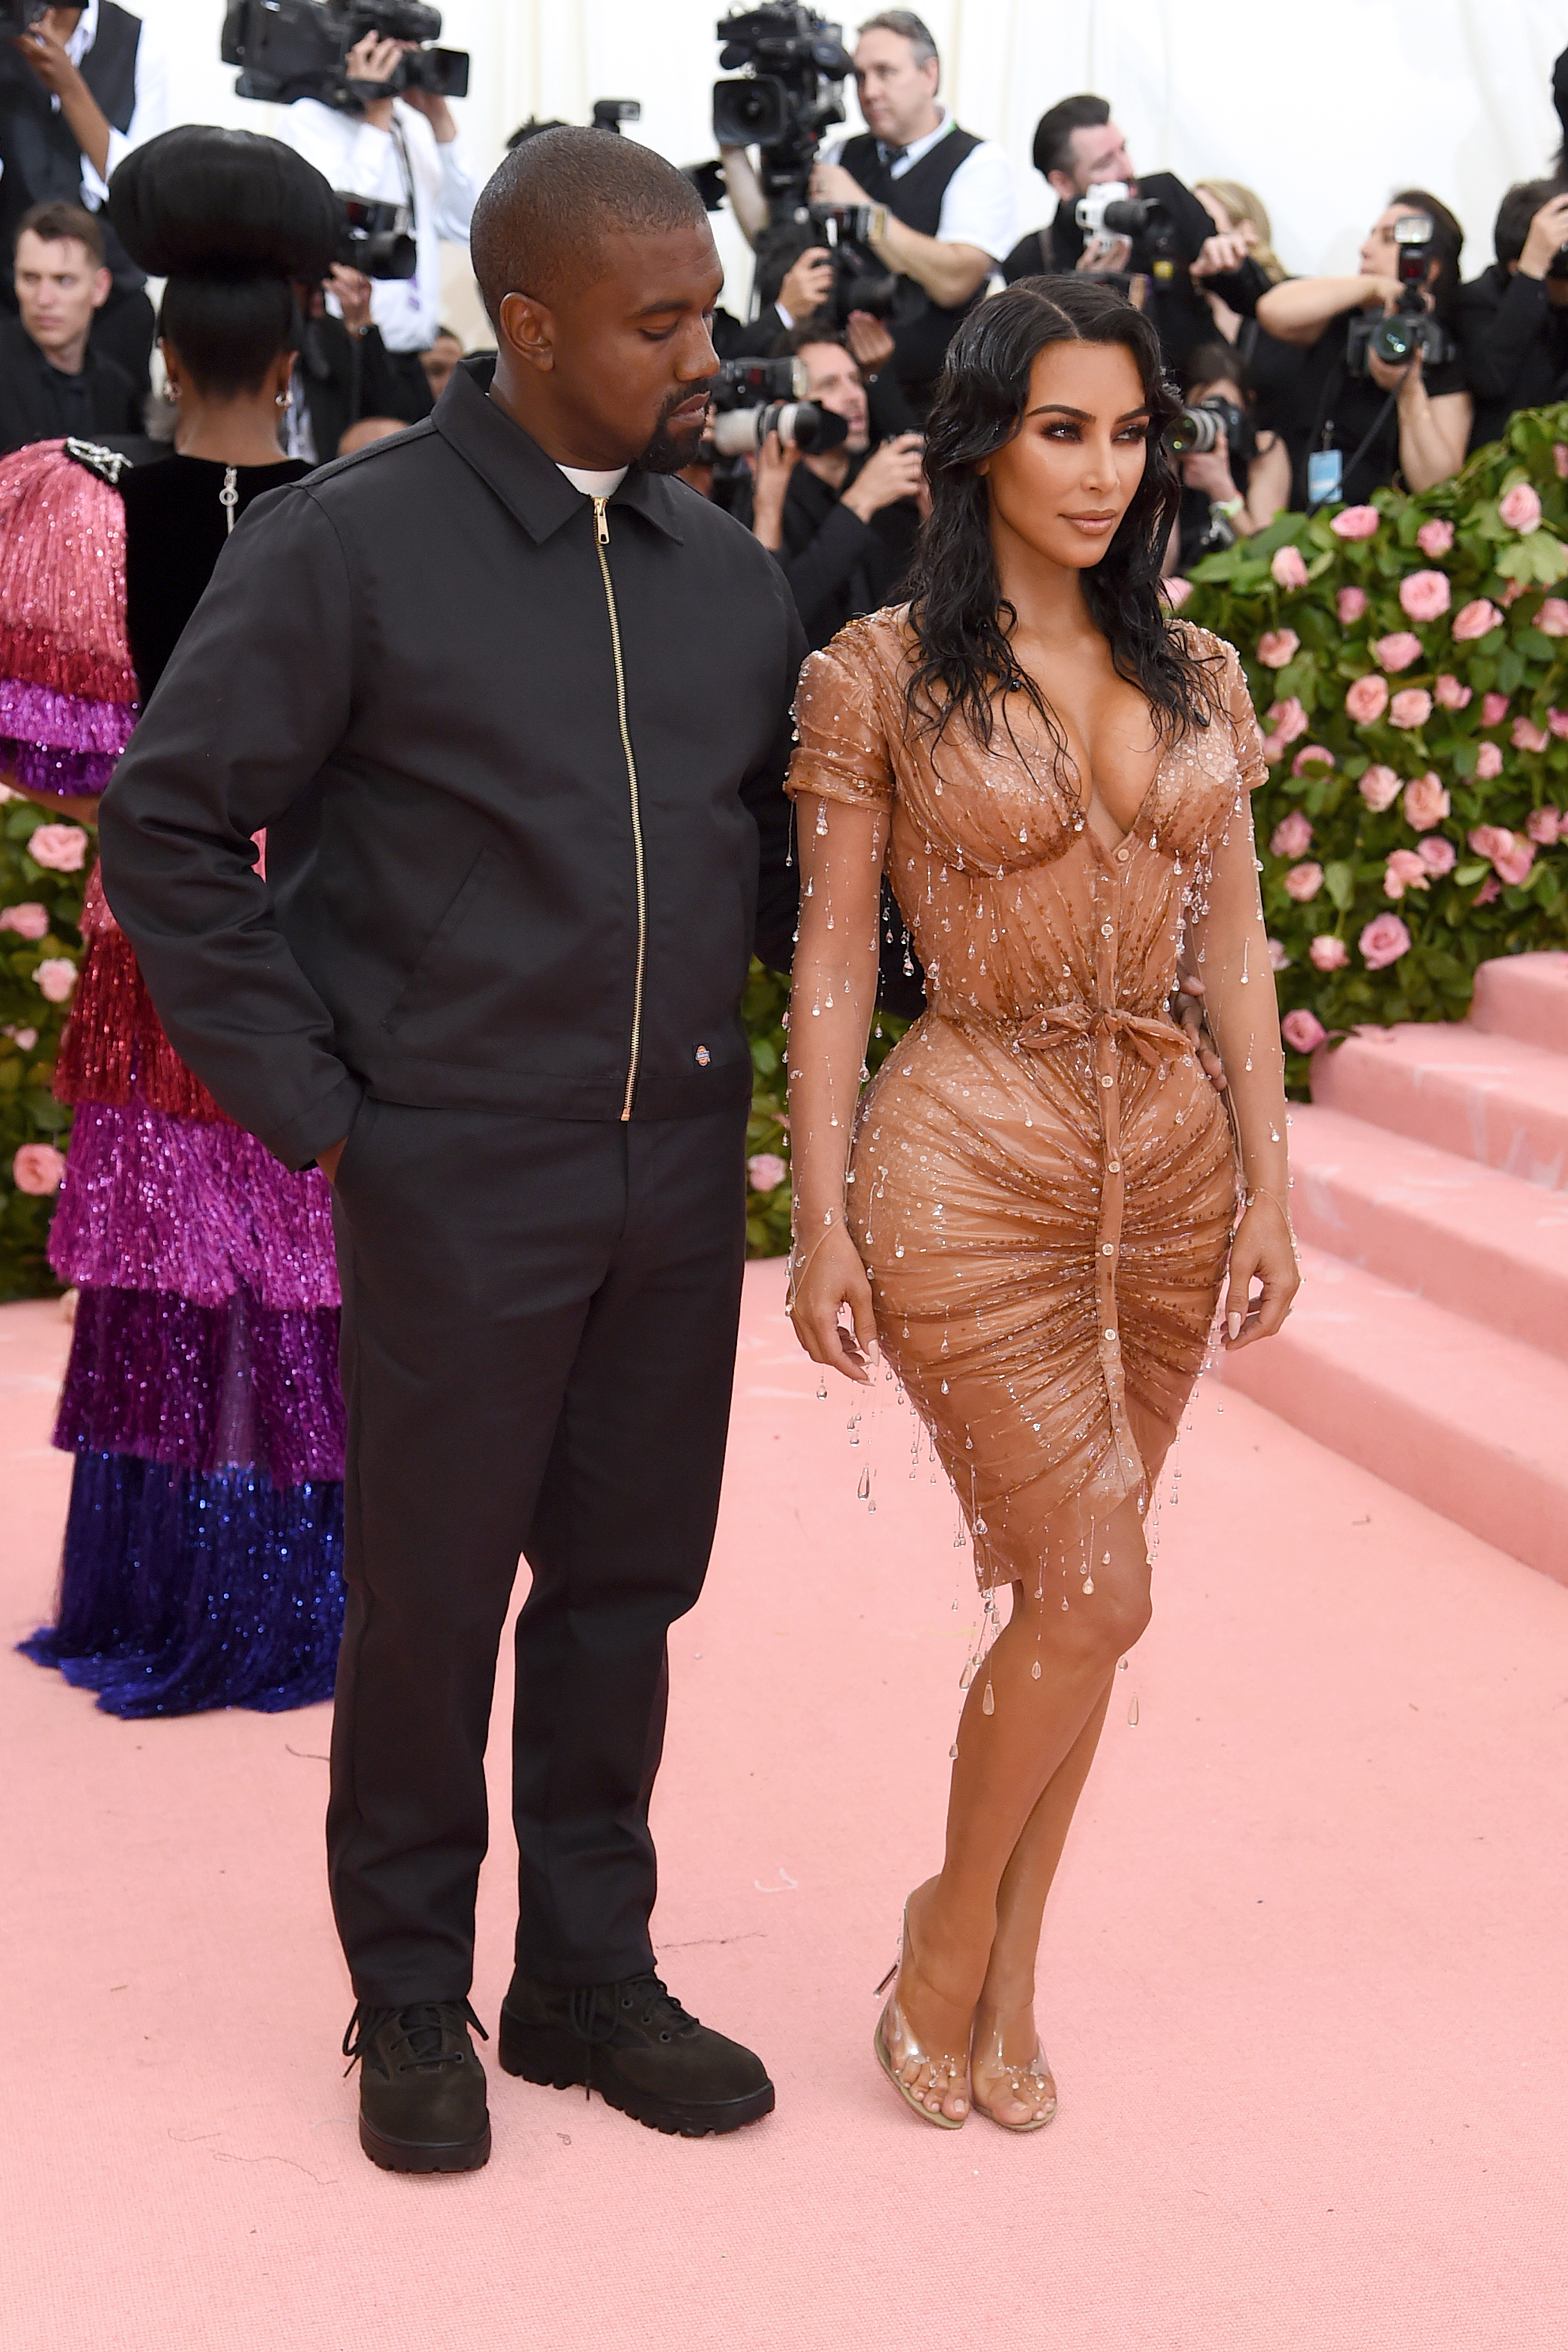 Kanye West and Kim Kardashian West attend The 2019 Met Gala Celebrating Camp: Notes on Fashion at Metropolitan Museum of Art on May 06, 2019 in New York City. (Photo by Jamie McCarthy/Getty Images)